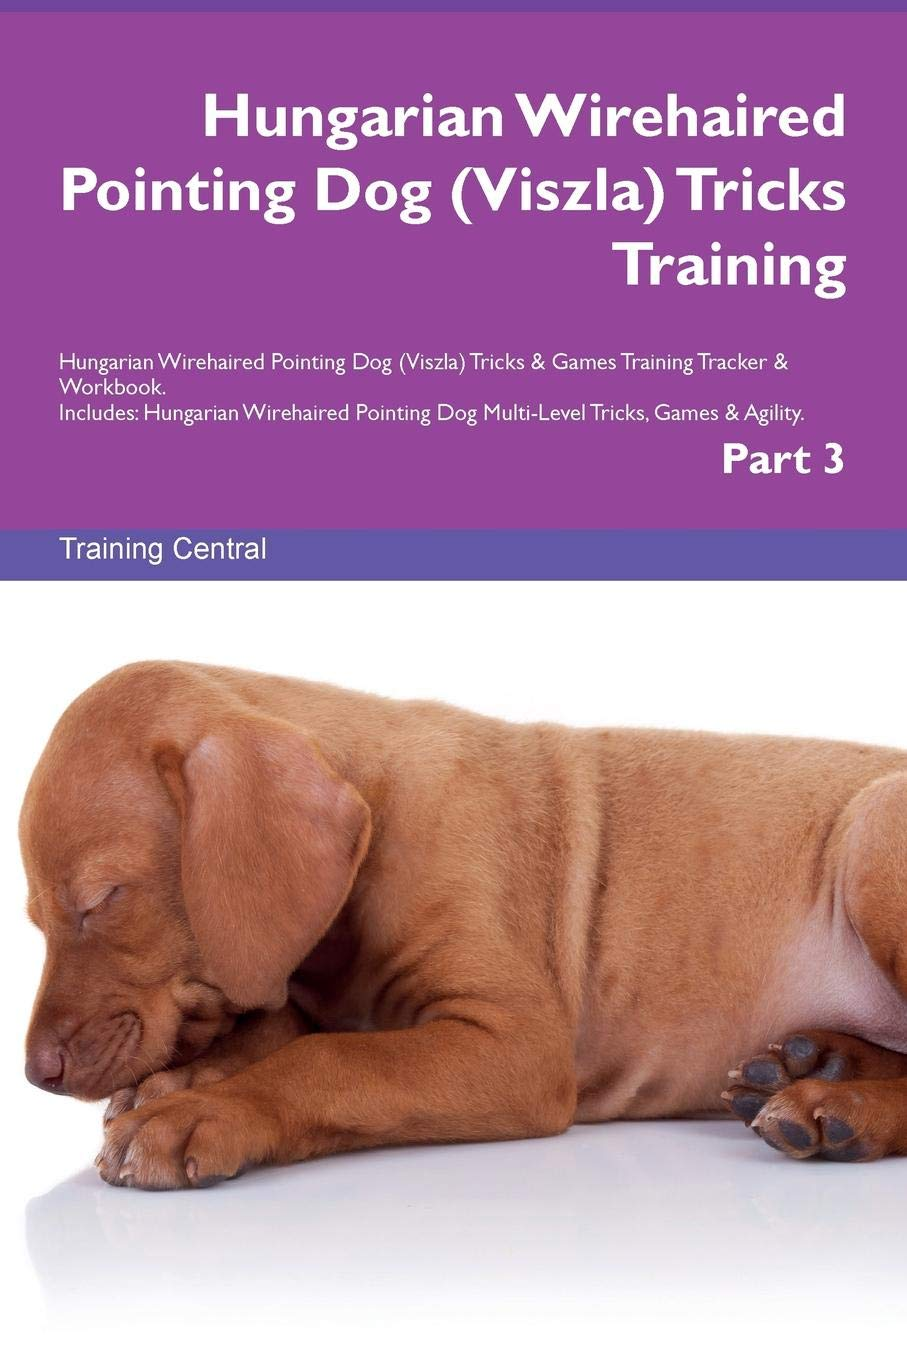 Hungarian Wirehaired Pointing Dog (Viszla) Tricks Training Hungarian Wirehaired Pointing Dog (Viszla) Tricks & Games Training Tracker & Workbook. ... Multi-Level Tricks, Games & Agility. Part 3 ebook